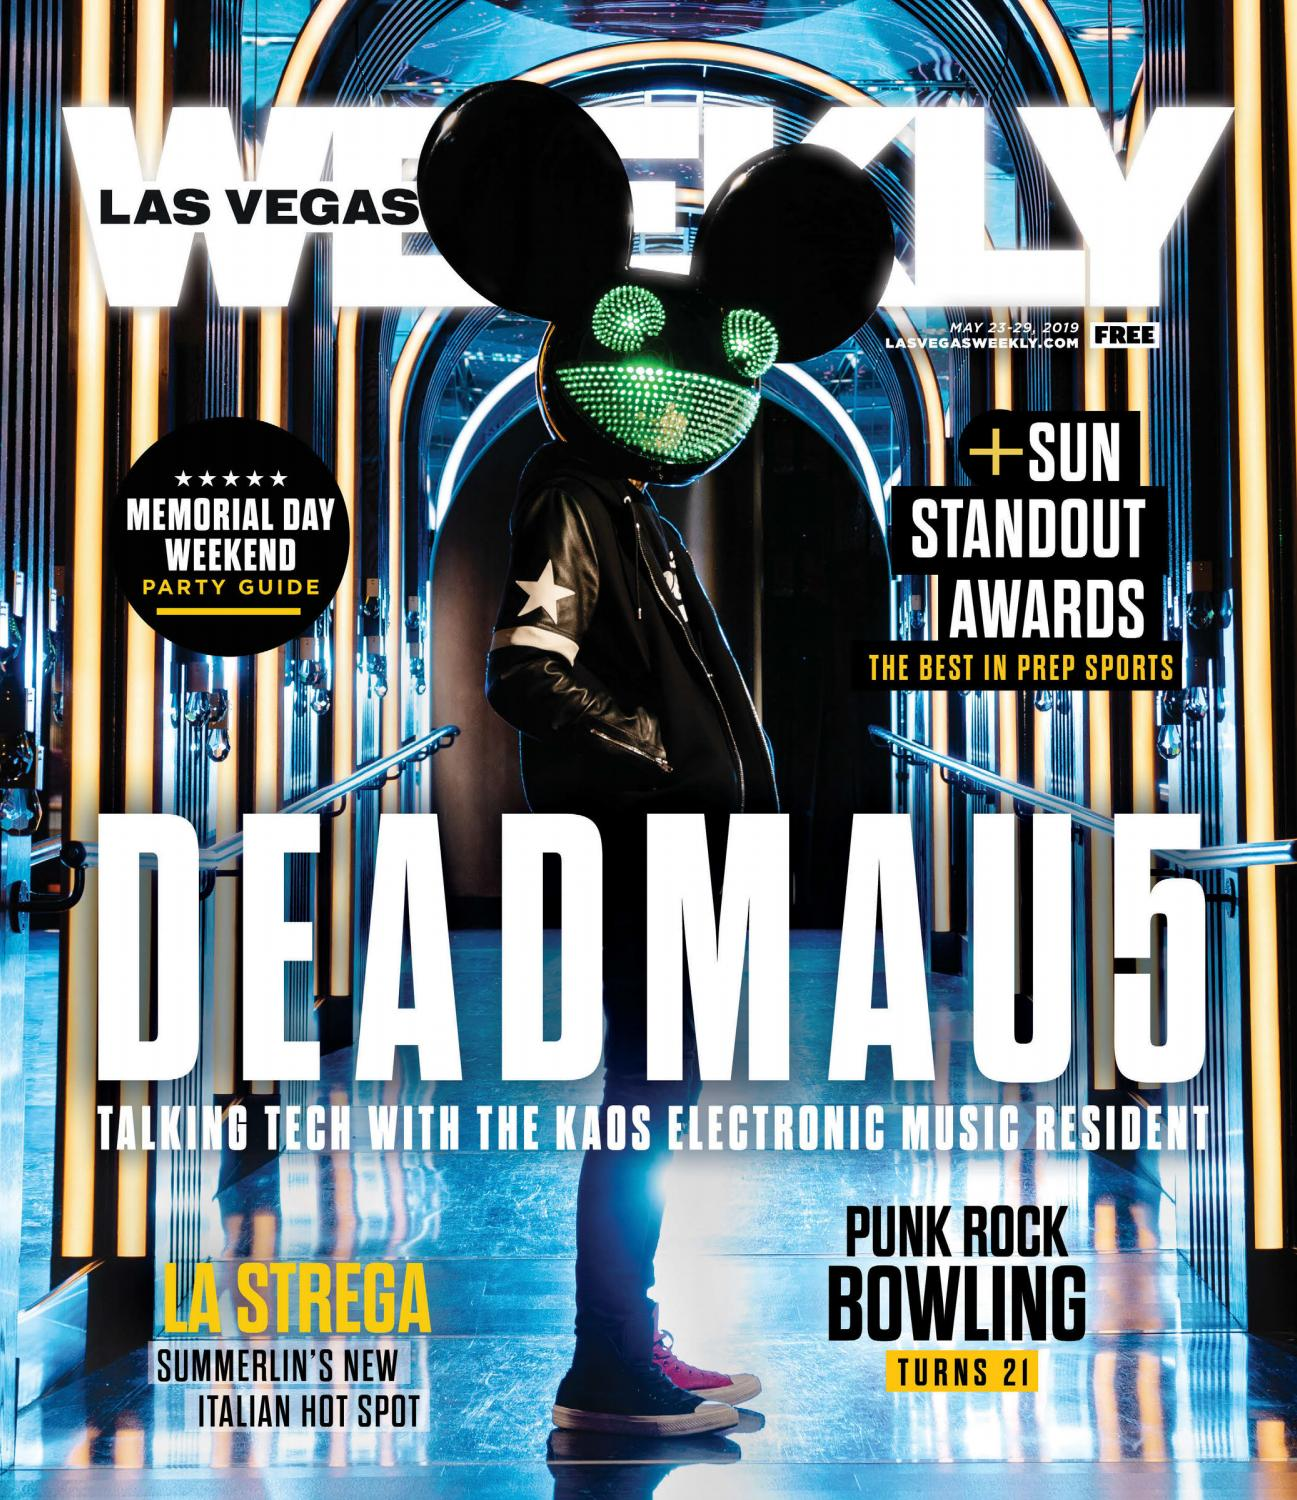 a935d47f30e10 2019-05-23 - Las Vegas Weekly by Greenspun Media Group - issuu